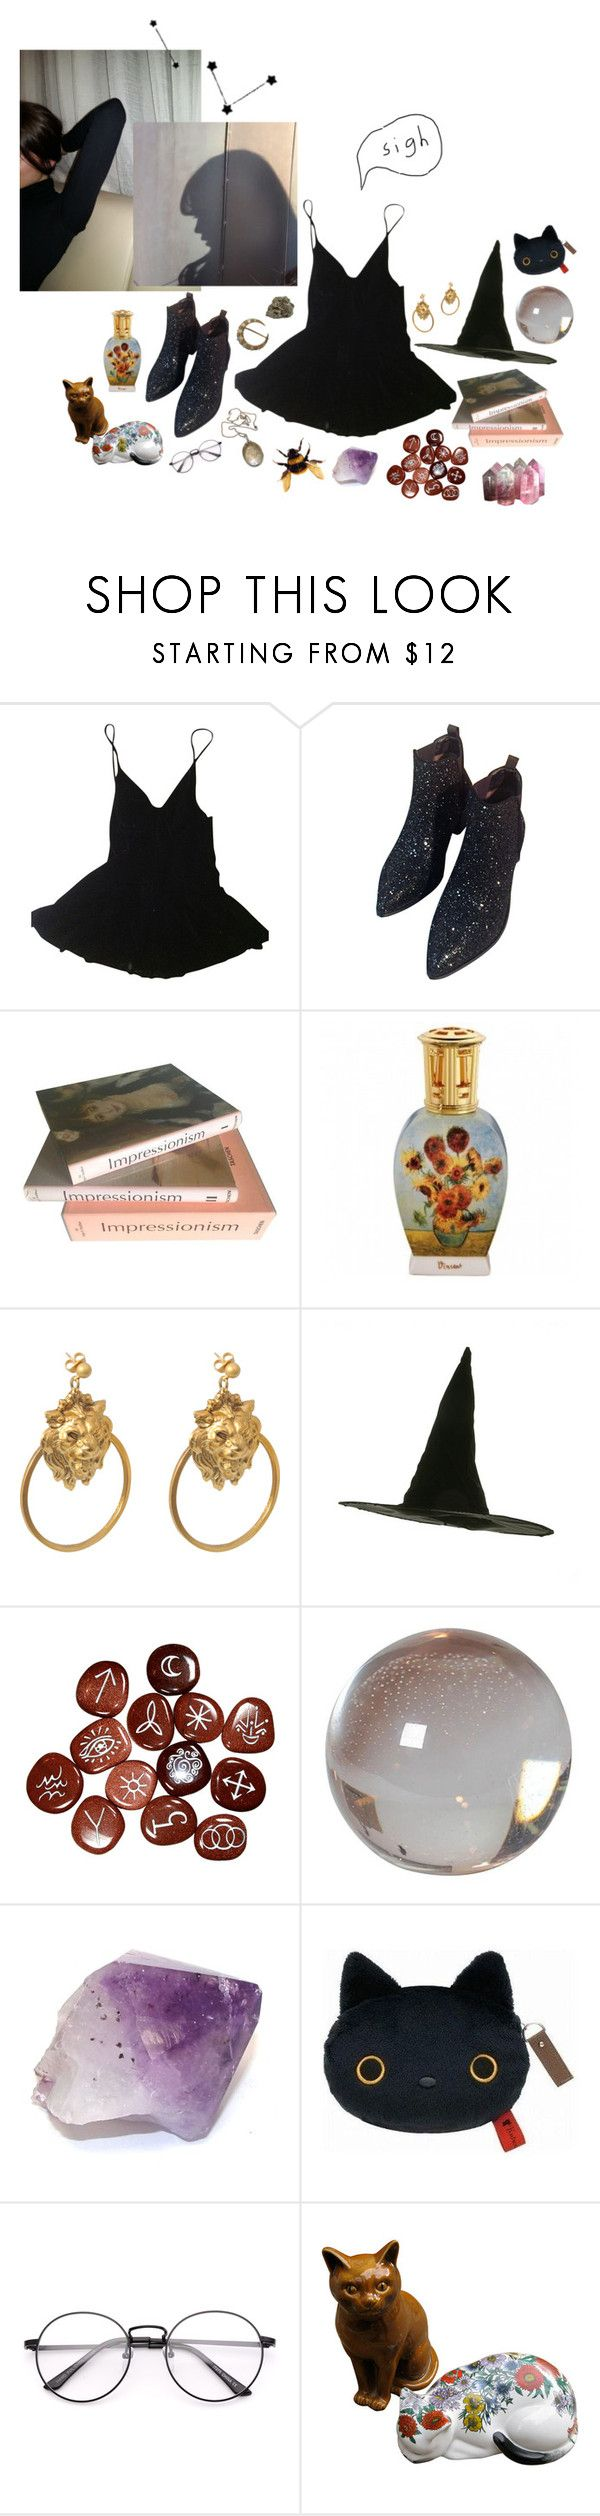 """Untitled #60"" by thestarrynightsky ❤ liked on Polyvore featuring Katharine Hamnett, WithChic, Taschen, Ela Stone, Vintage Collection, DK and Fornasetti"